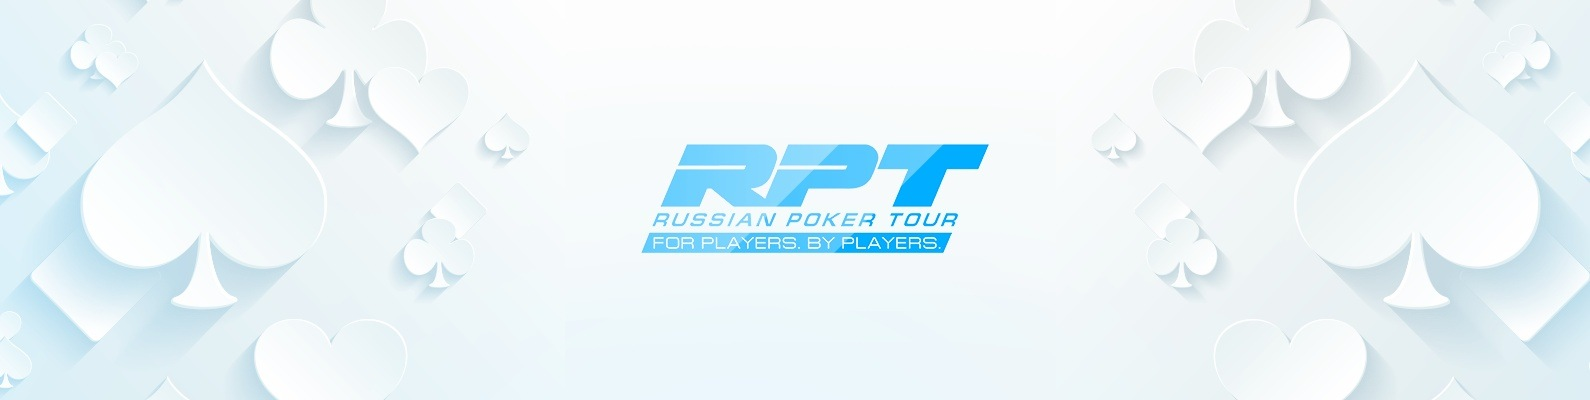 Wsop игрок instagram game